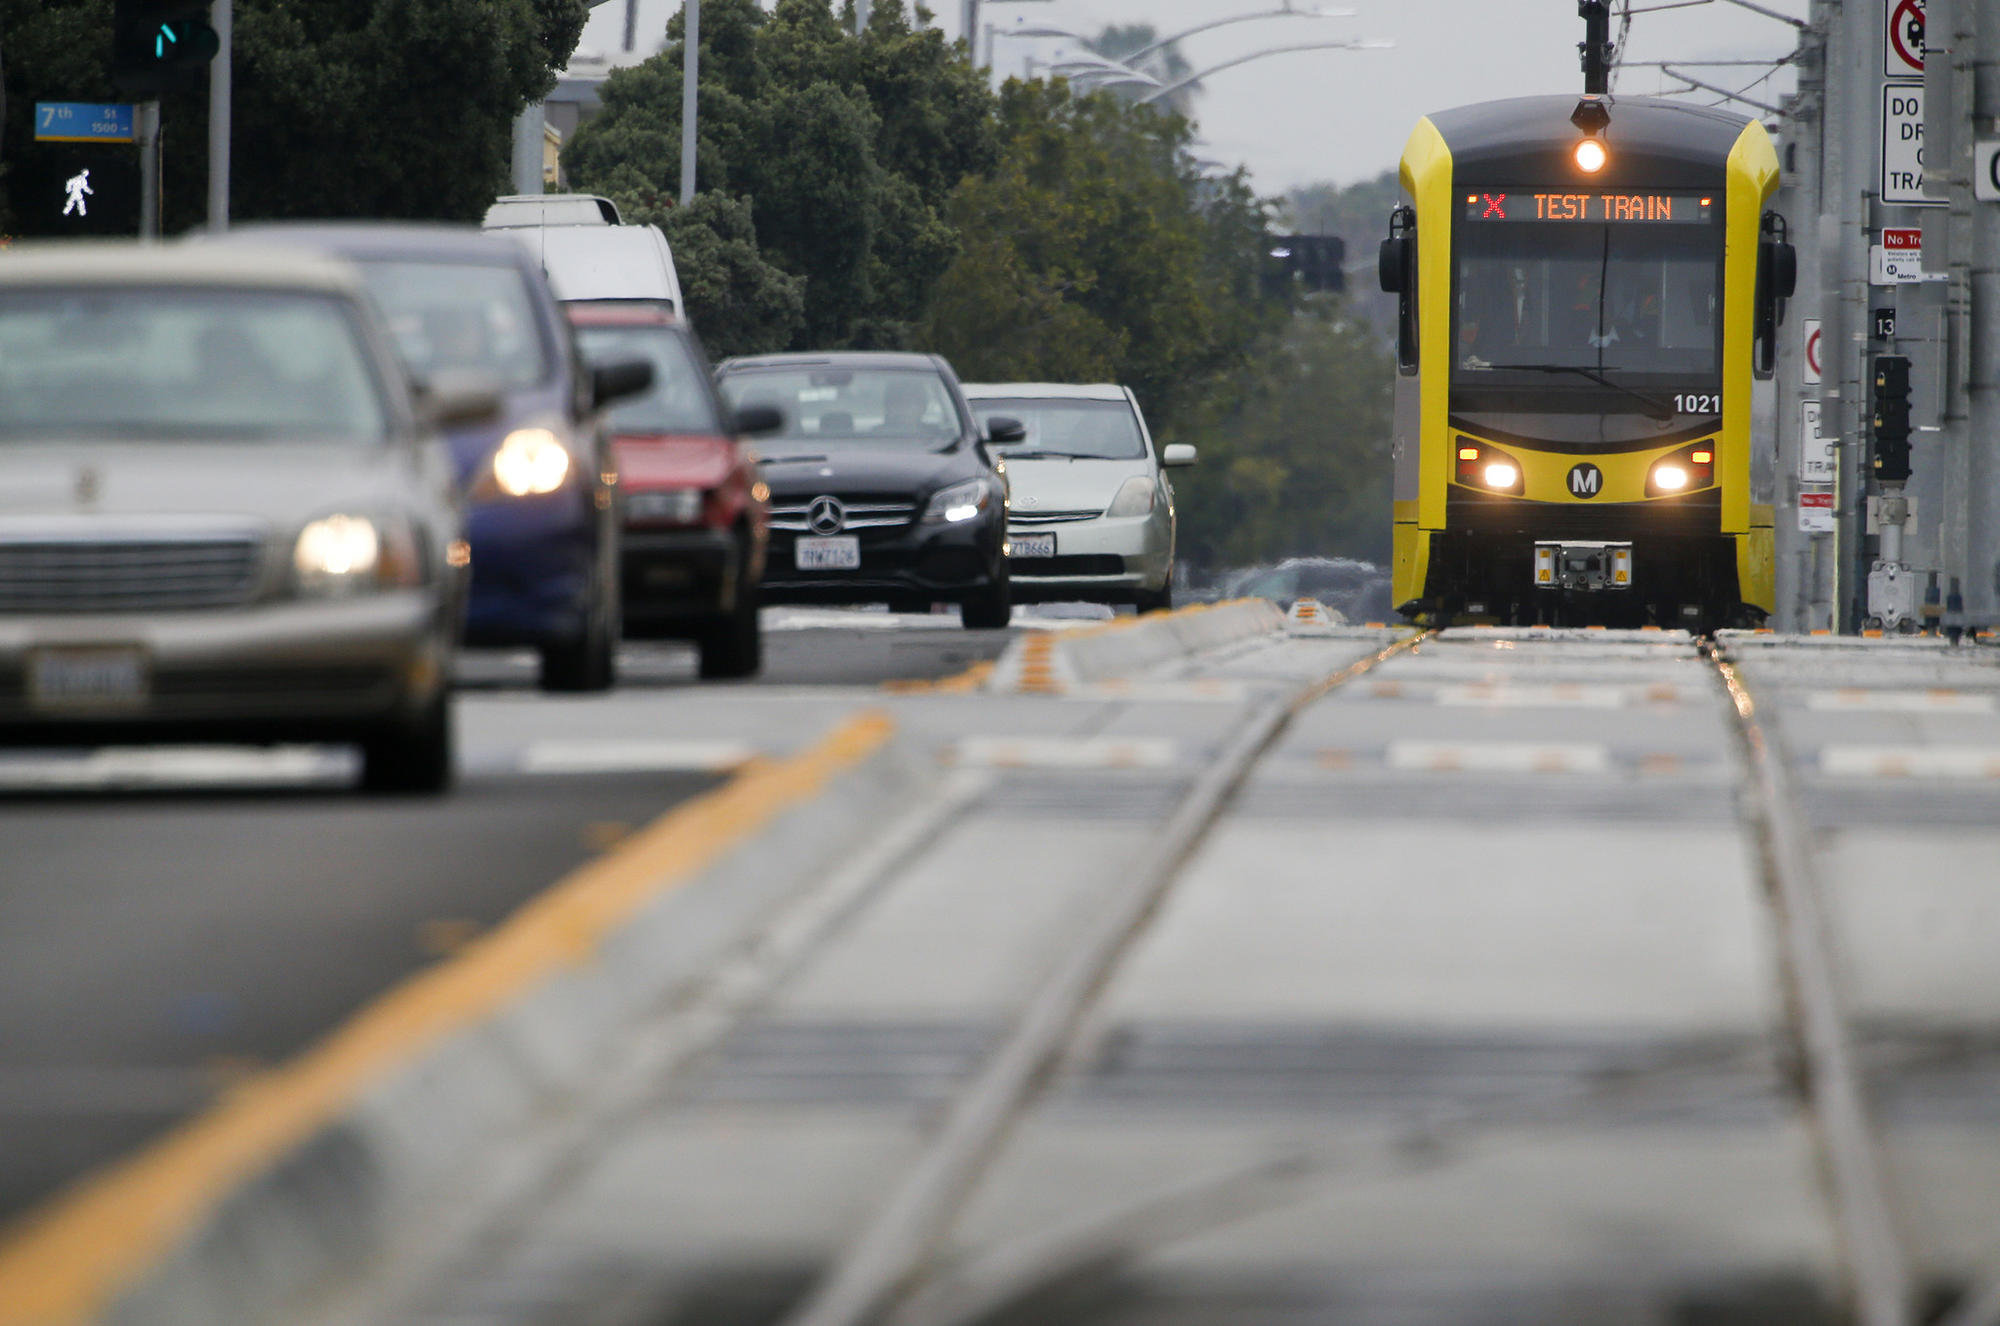 An Expo Line test train nears the Santa Monica station. The trip from downtown takes 50 minutes.